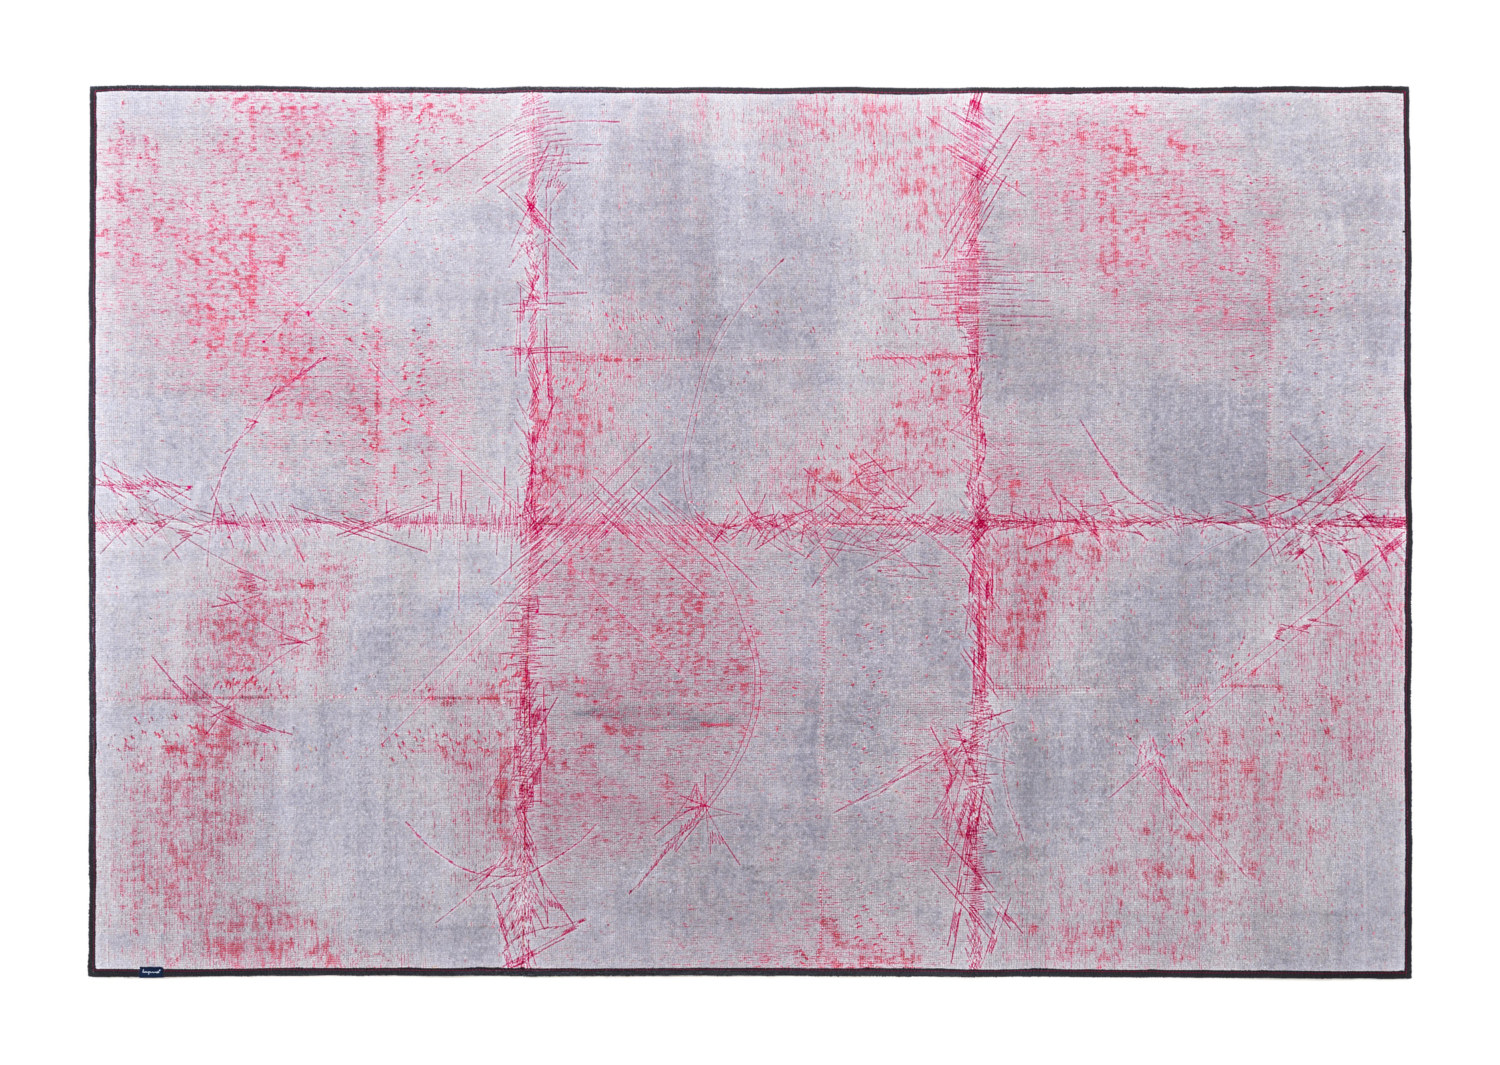 8661_THE MASHUP ABSTRCT_grey & red with red stitching_CUBIK patch size_170x260_2